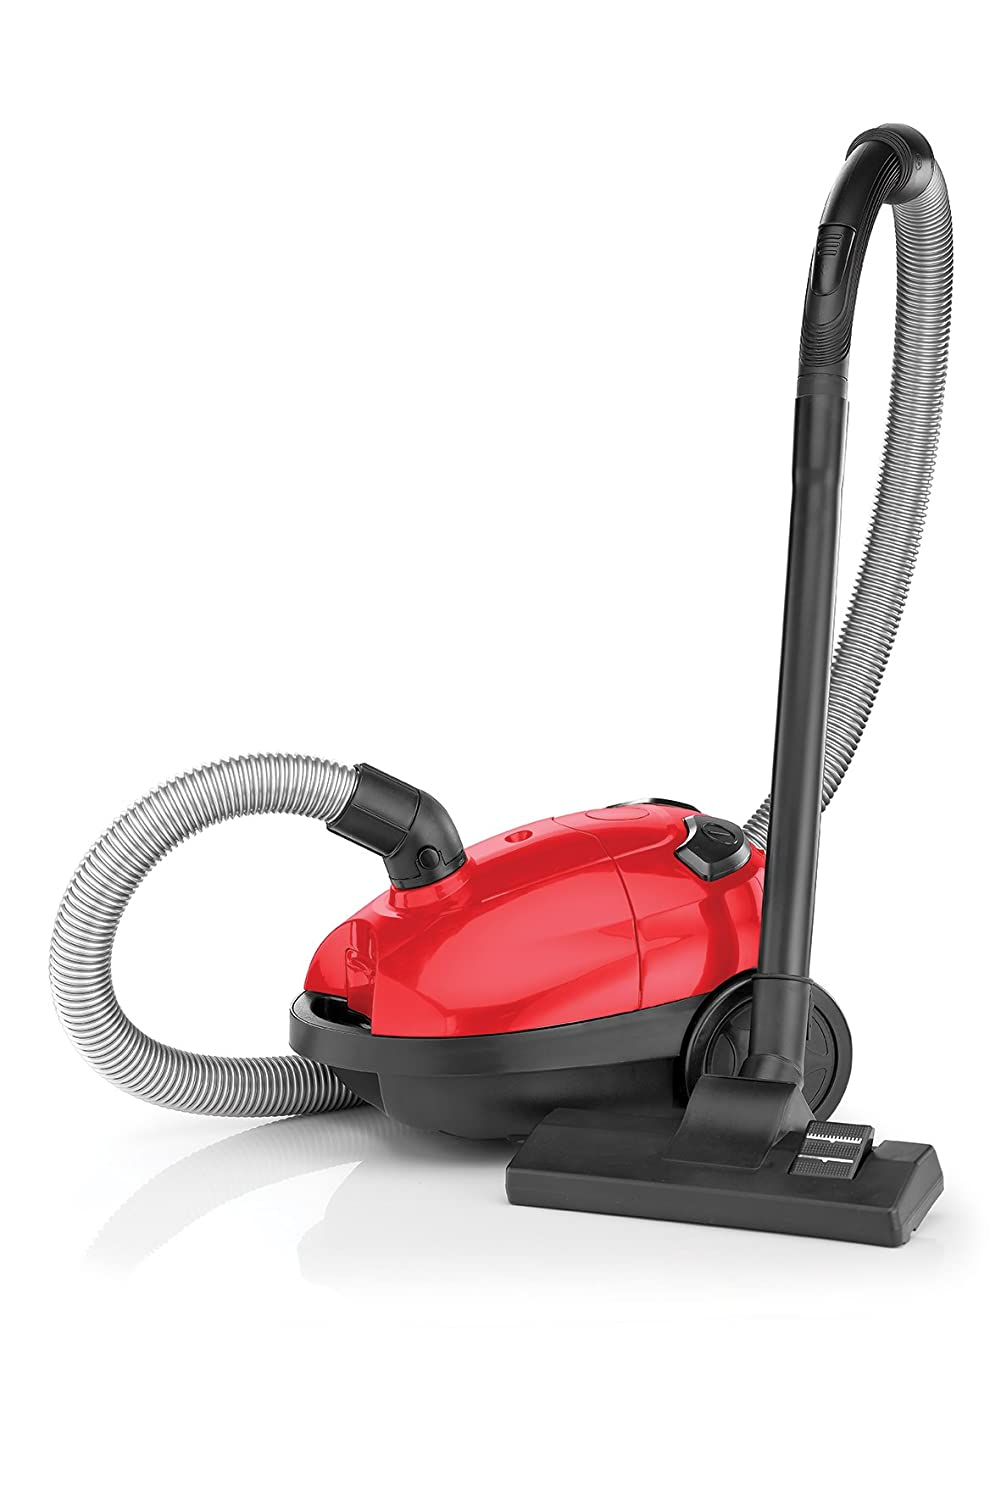 BLACK+DECKER VM1200-B5 1000-Watt,100 Air Watts High Suction, 1-Litre Bagged Vacuum Cleaner (Red)